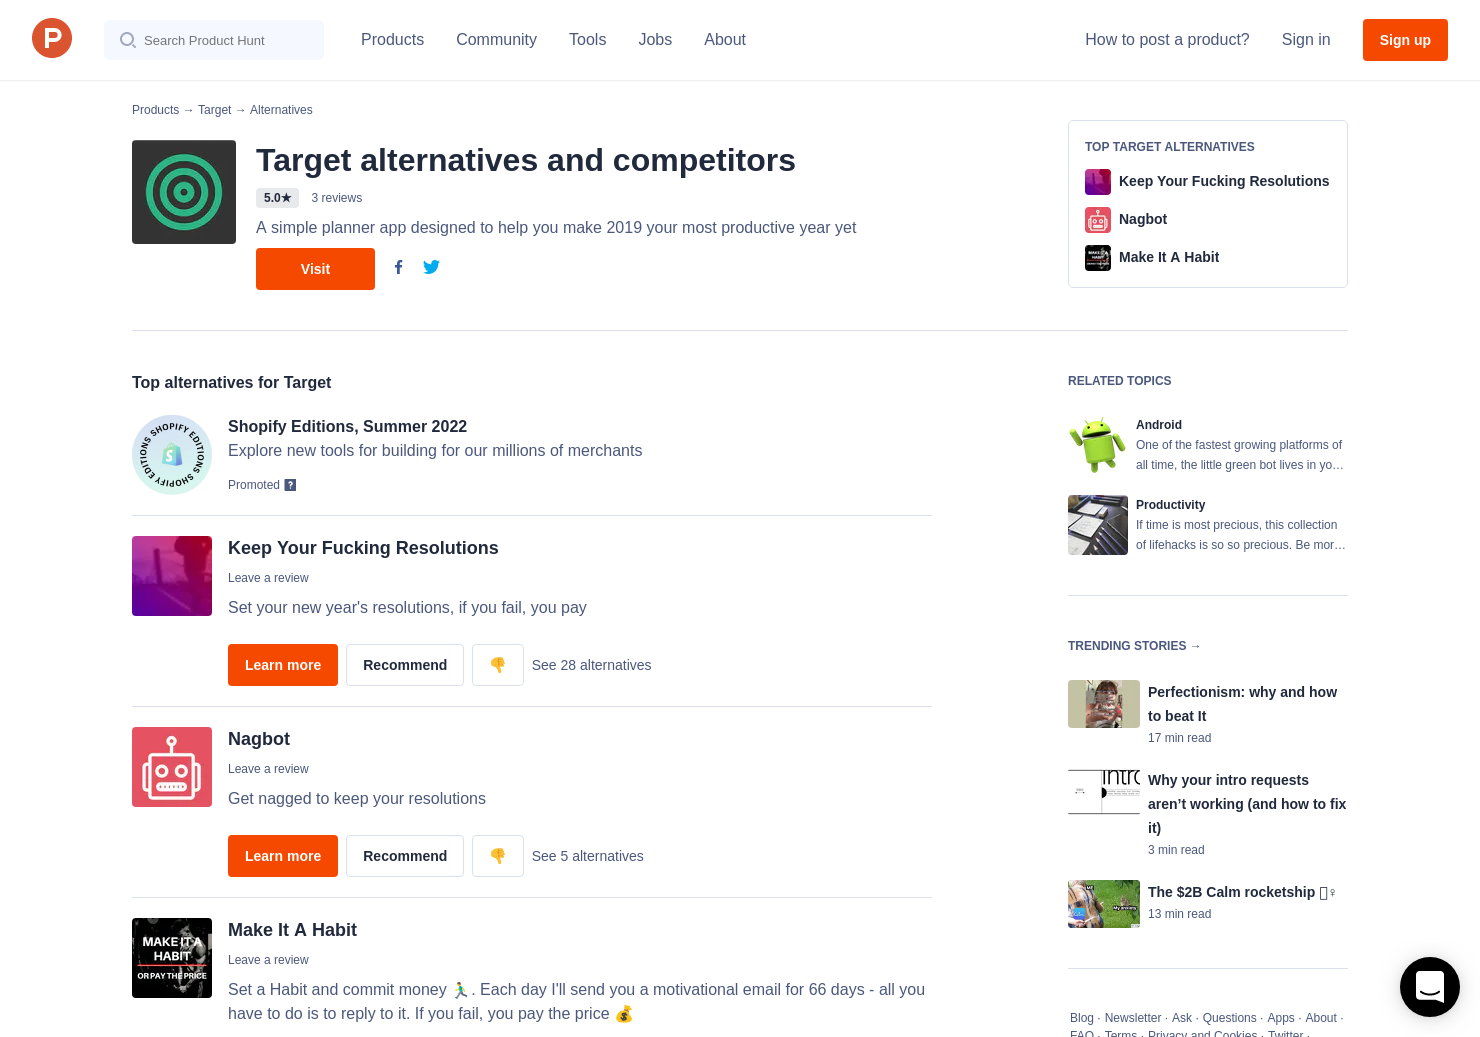 5 Alternatives to Target for Android | Product Hunt